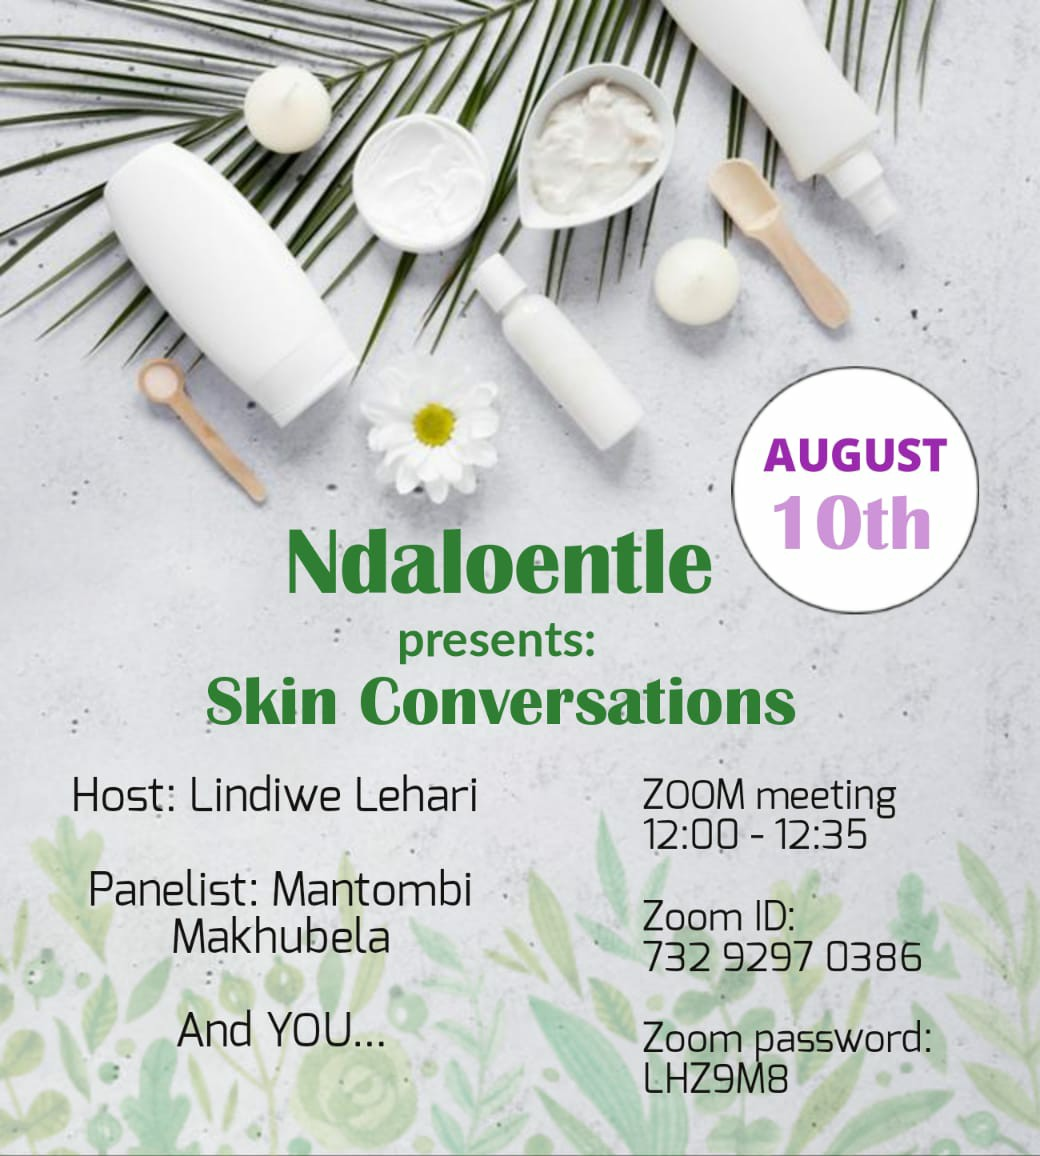 Ndaloenhle skin conversation ngomso at 12pm with @Mantombiii and @LindiweLehari Every skin is different and you have to select the correct skin care products and treatment routines to make the most of your skin; protecting it and retaining all its beauty. #OwnYourSkin